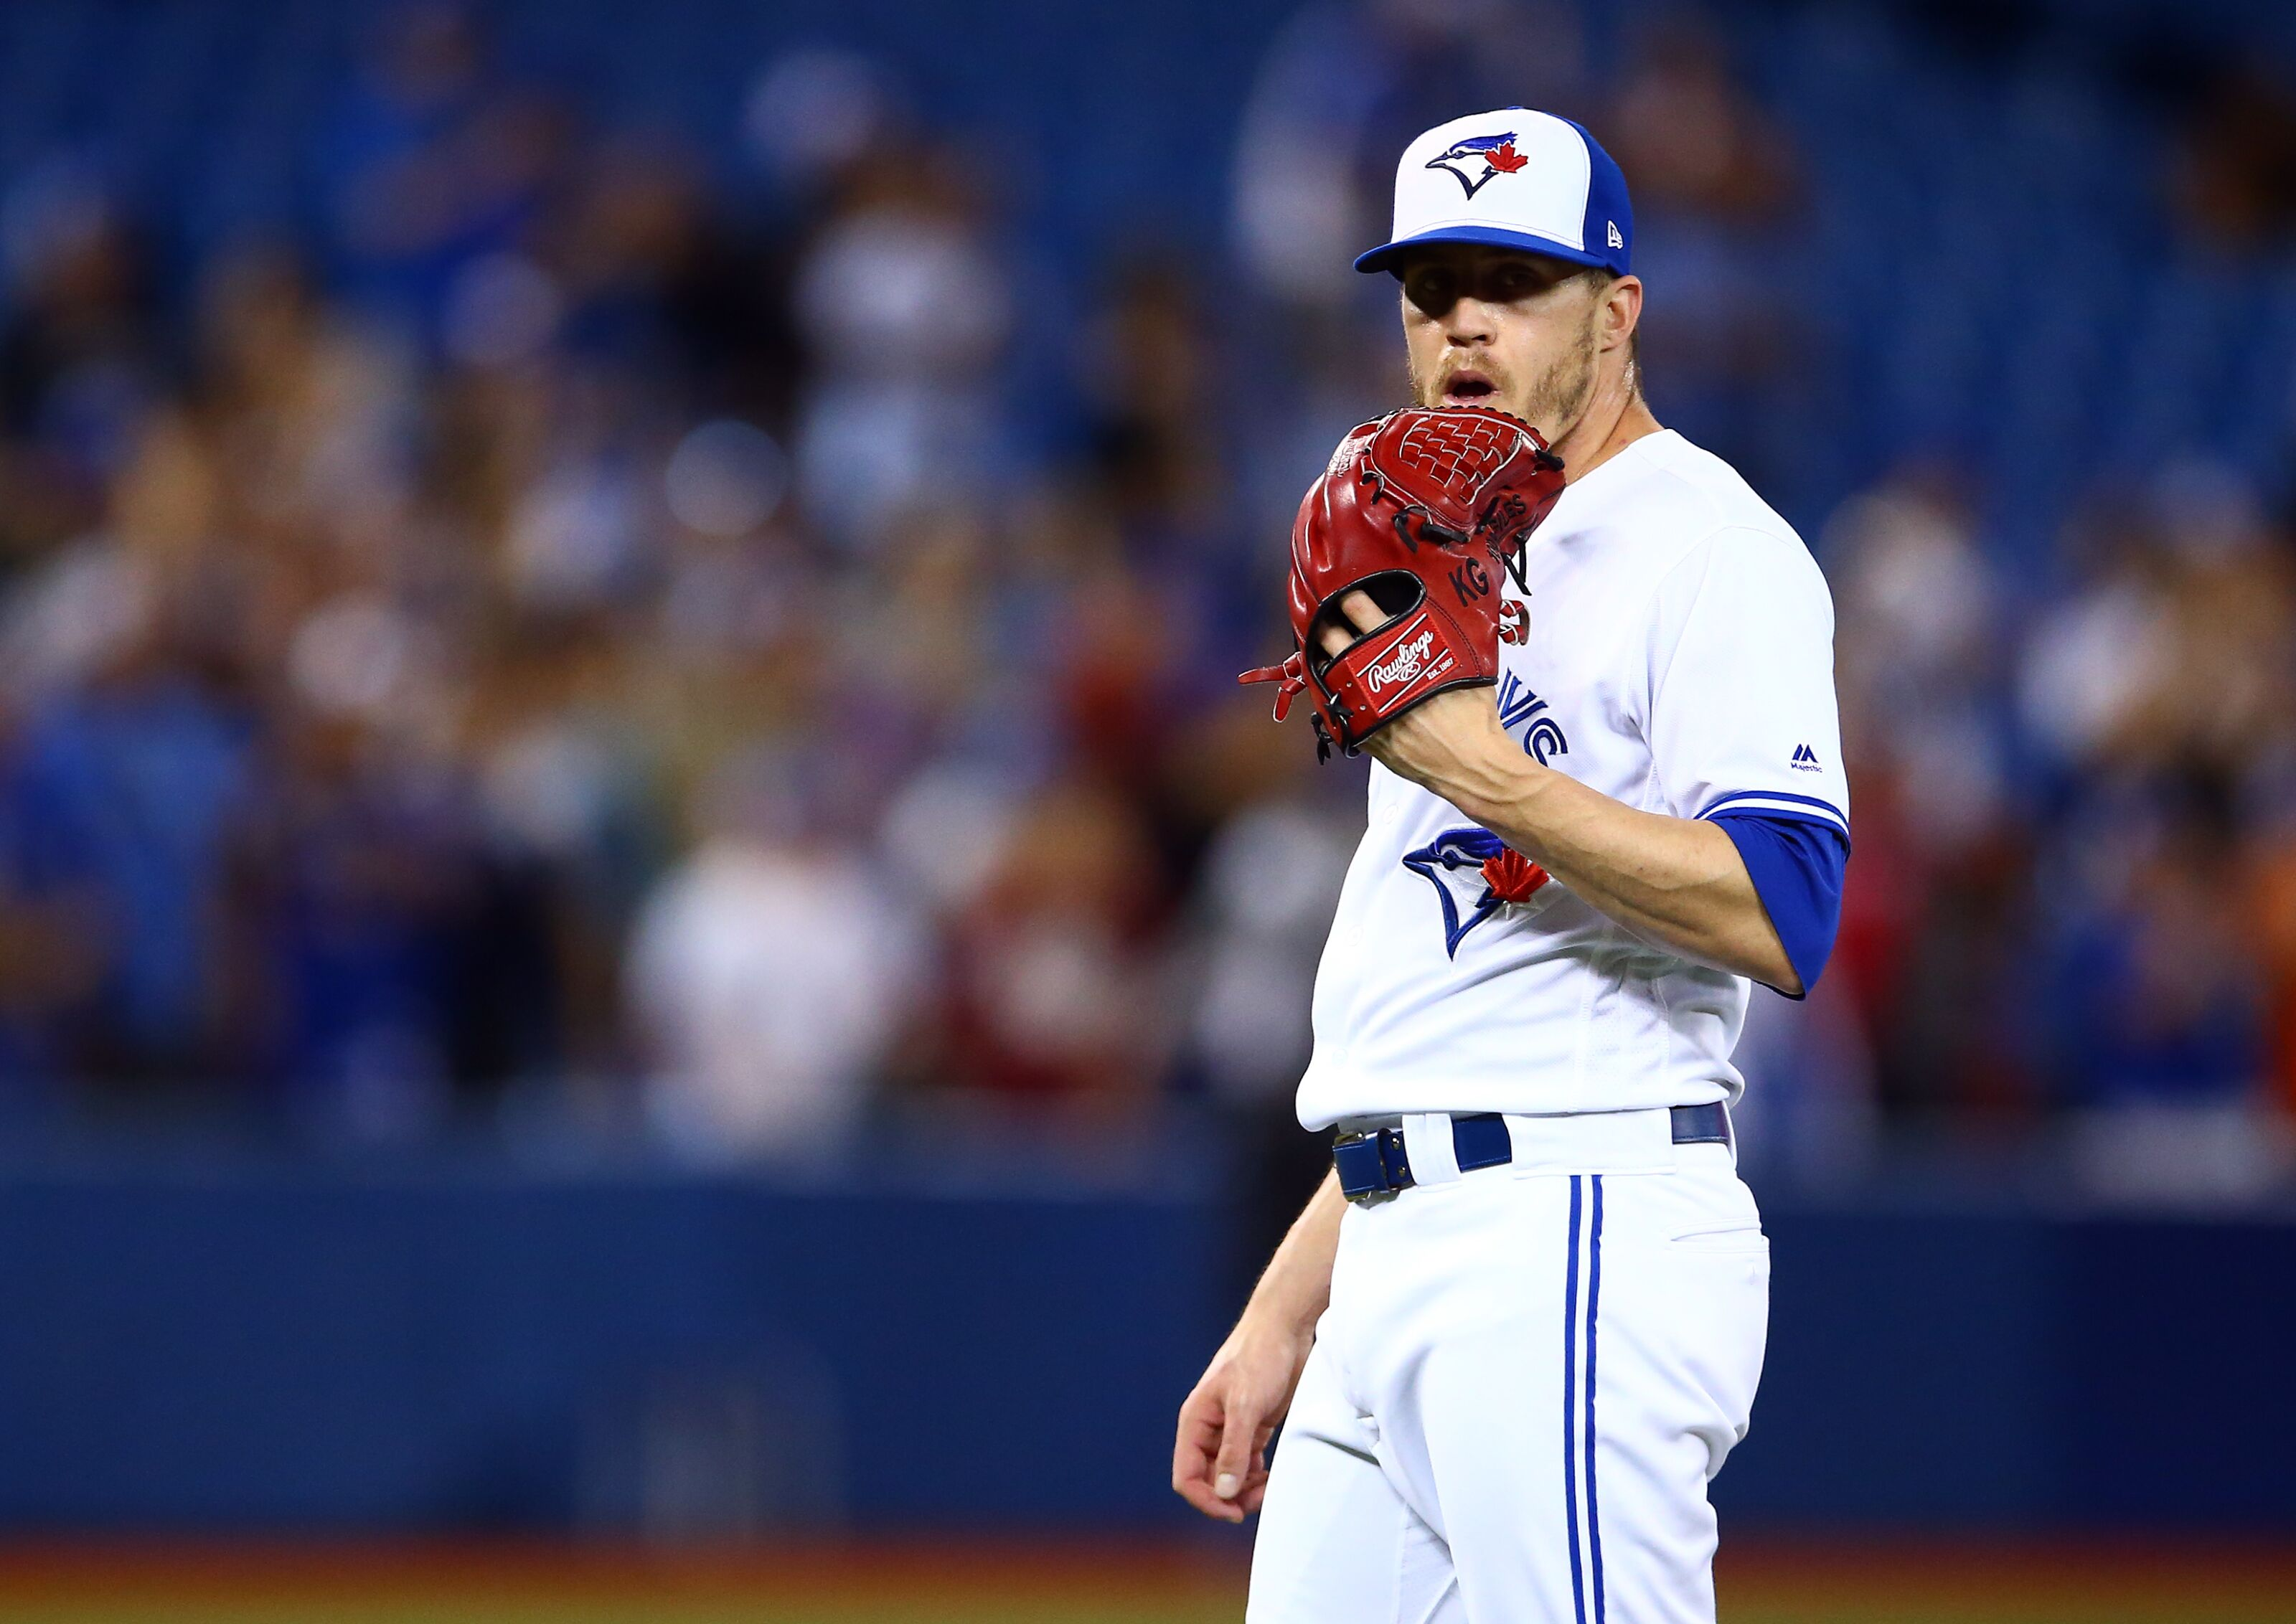 Toronto Blue Jays: Buying, selling, or a little bit of both?